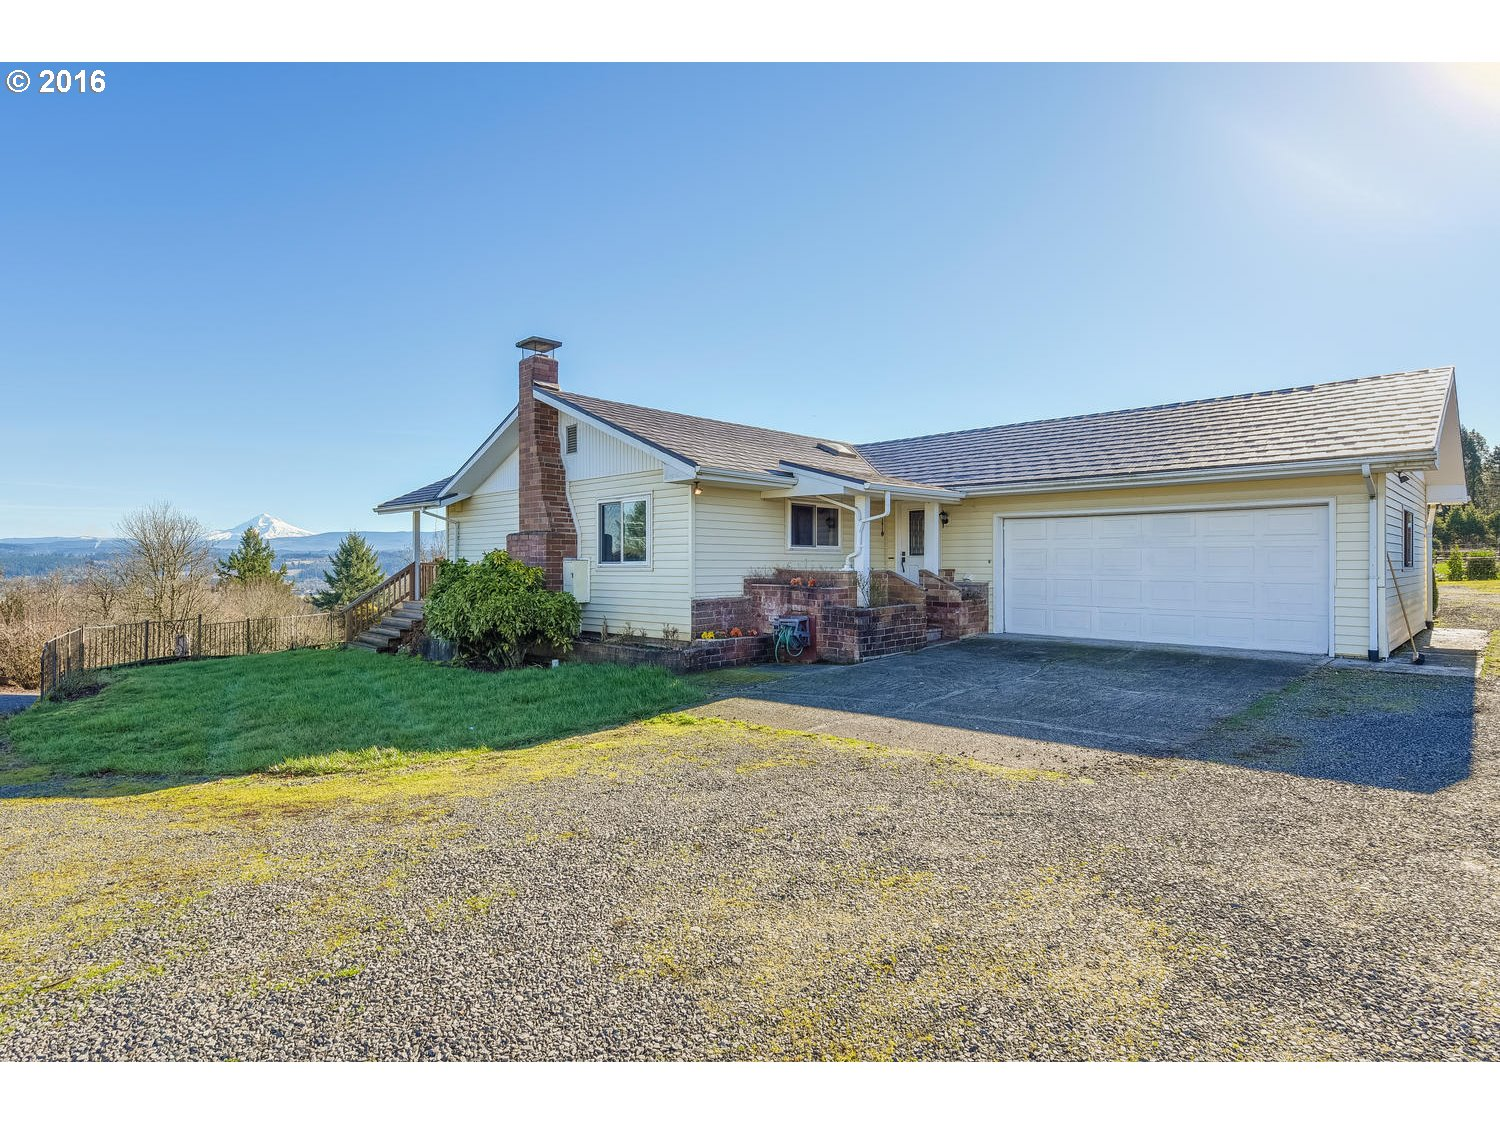 3372 sq. ft 4 bedrooms 3 bathrooms  House For Sale, Estacada, OR